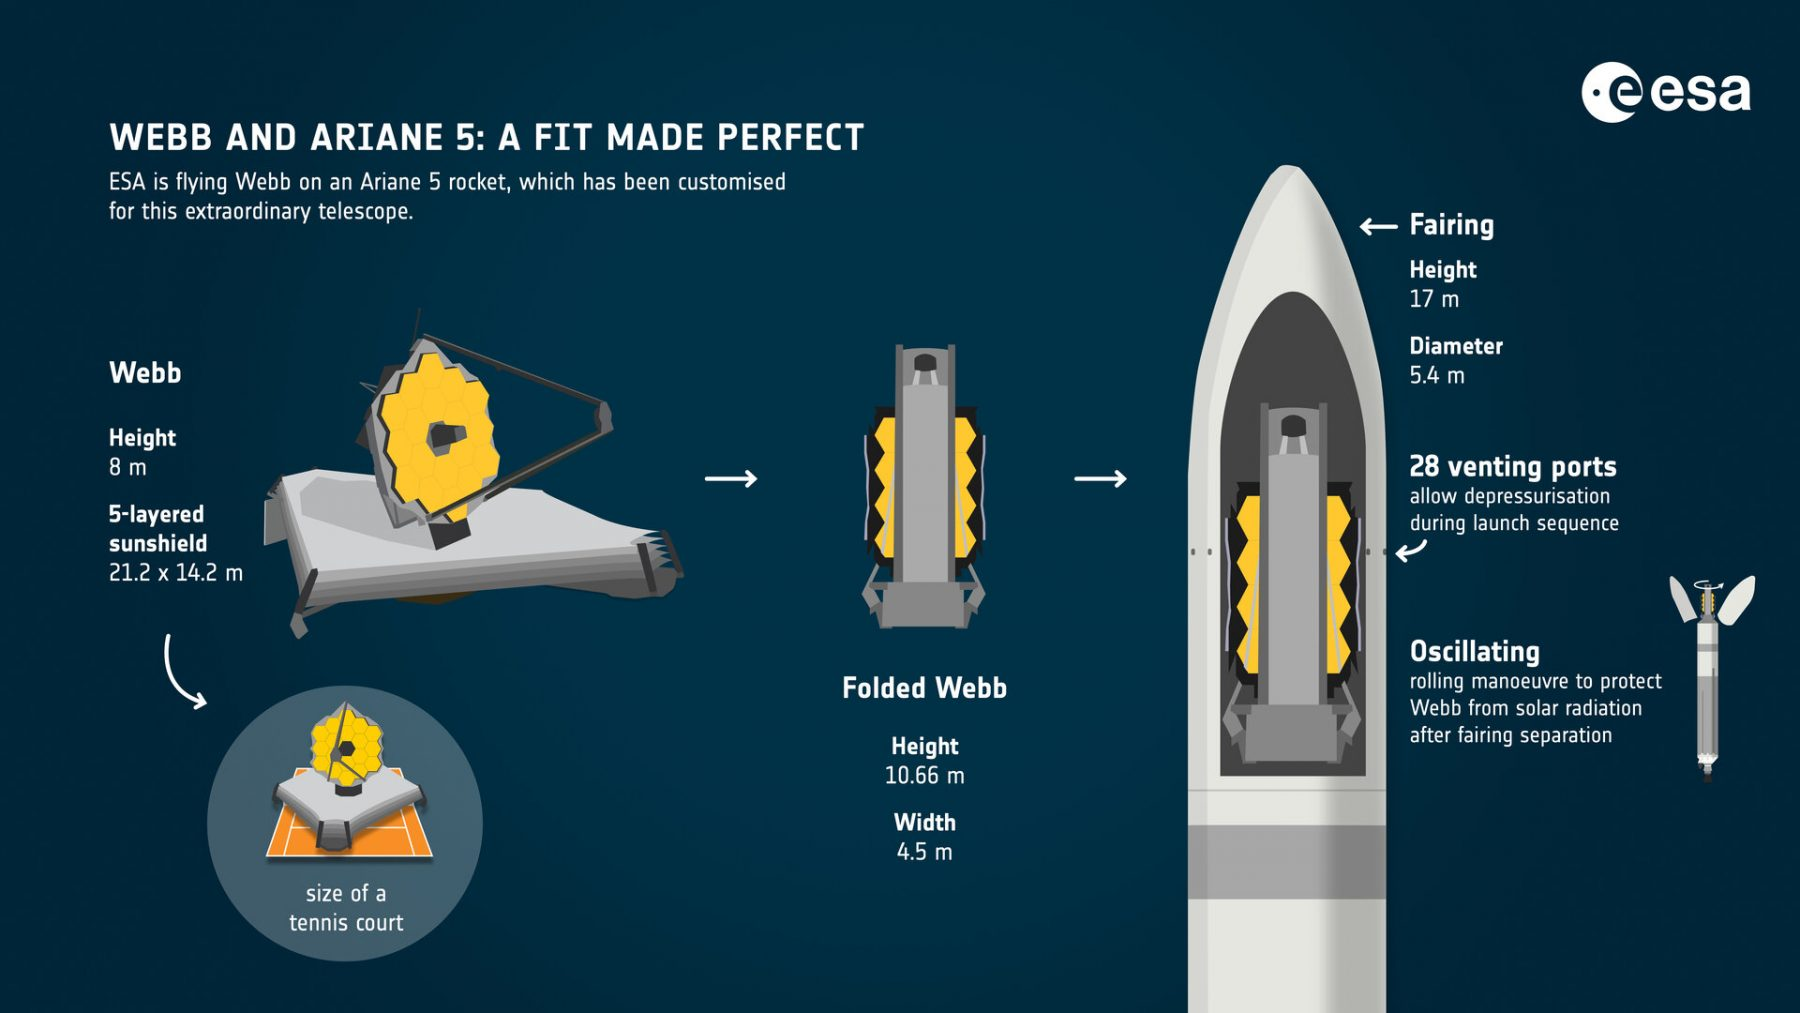 The James Webb telescope will be launched on an Ariane 5 rocket. Credit: ESA